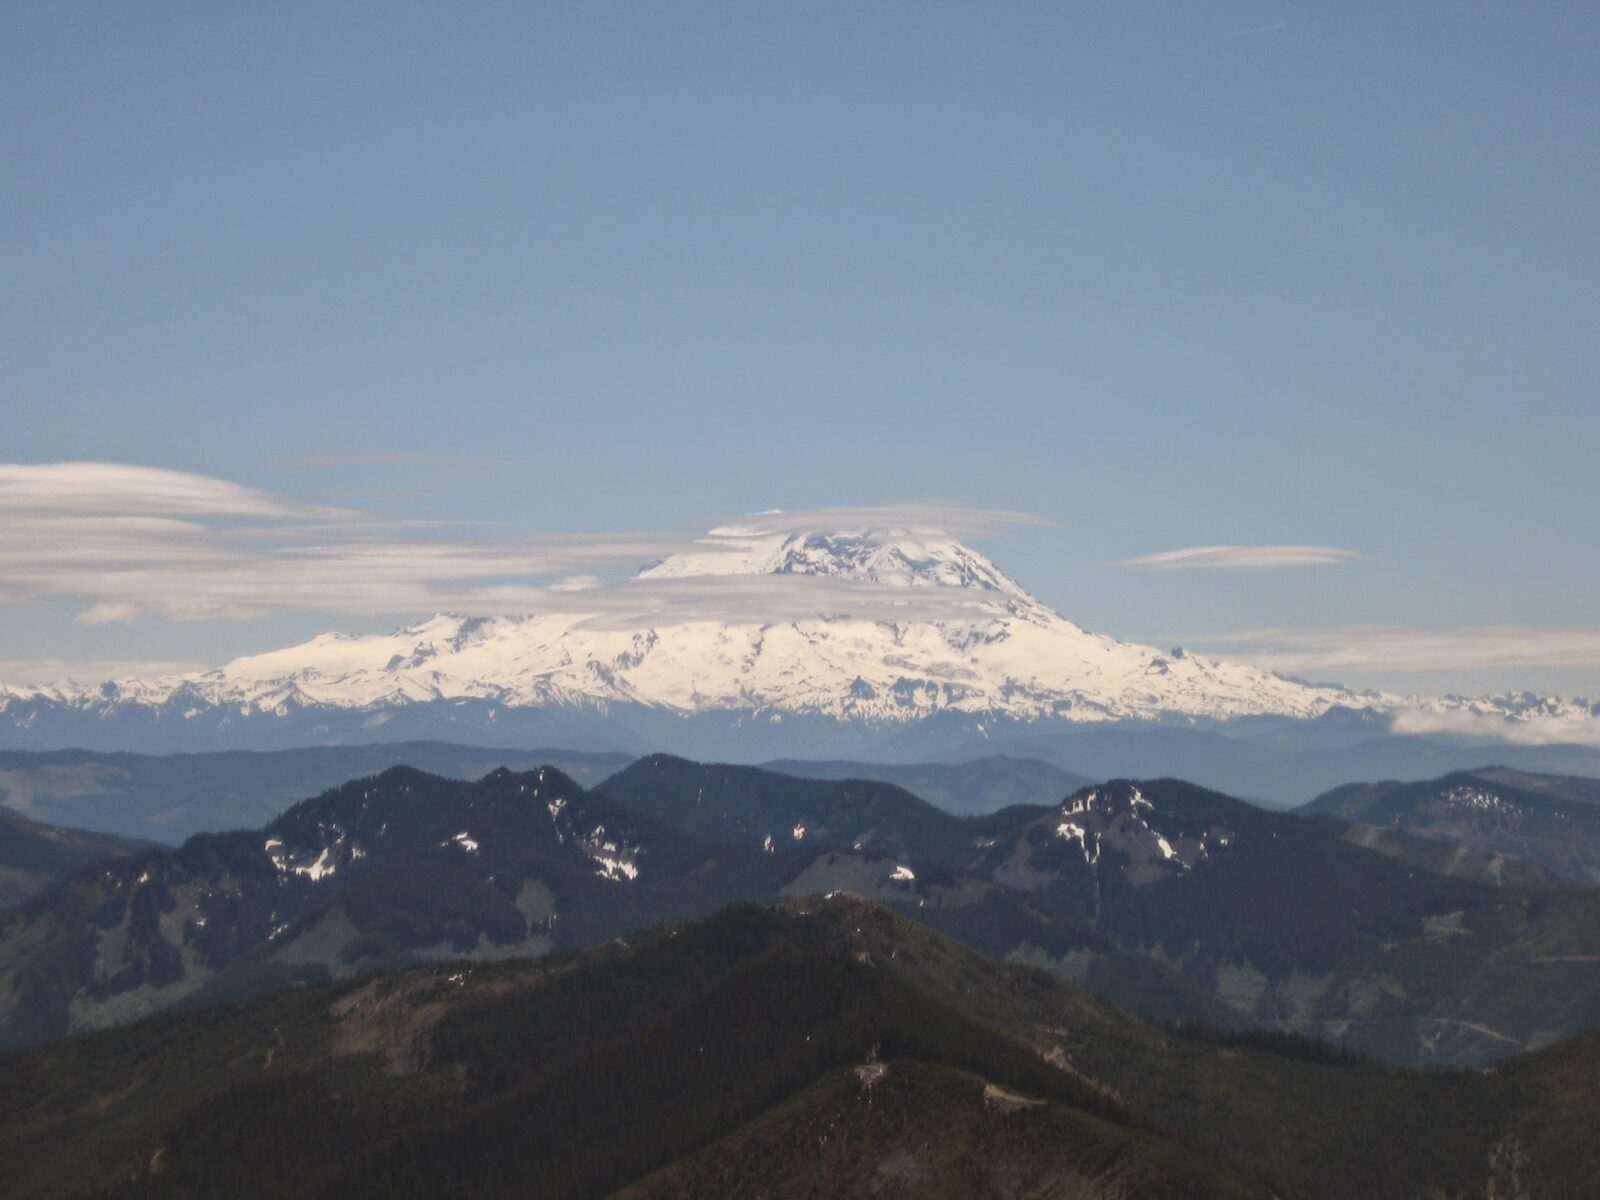 Mt Rainier, a high snow covered mountain, in the background surrounded by a few clouds on an otherwise sunny day. Smaller mountains are in the foreground from Bandera Mountain, one of the best hikes in Washington